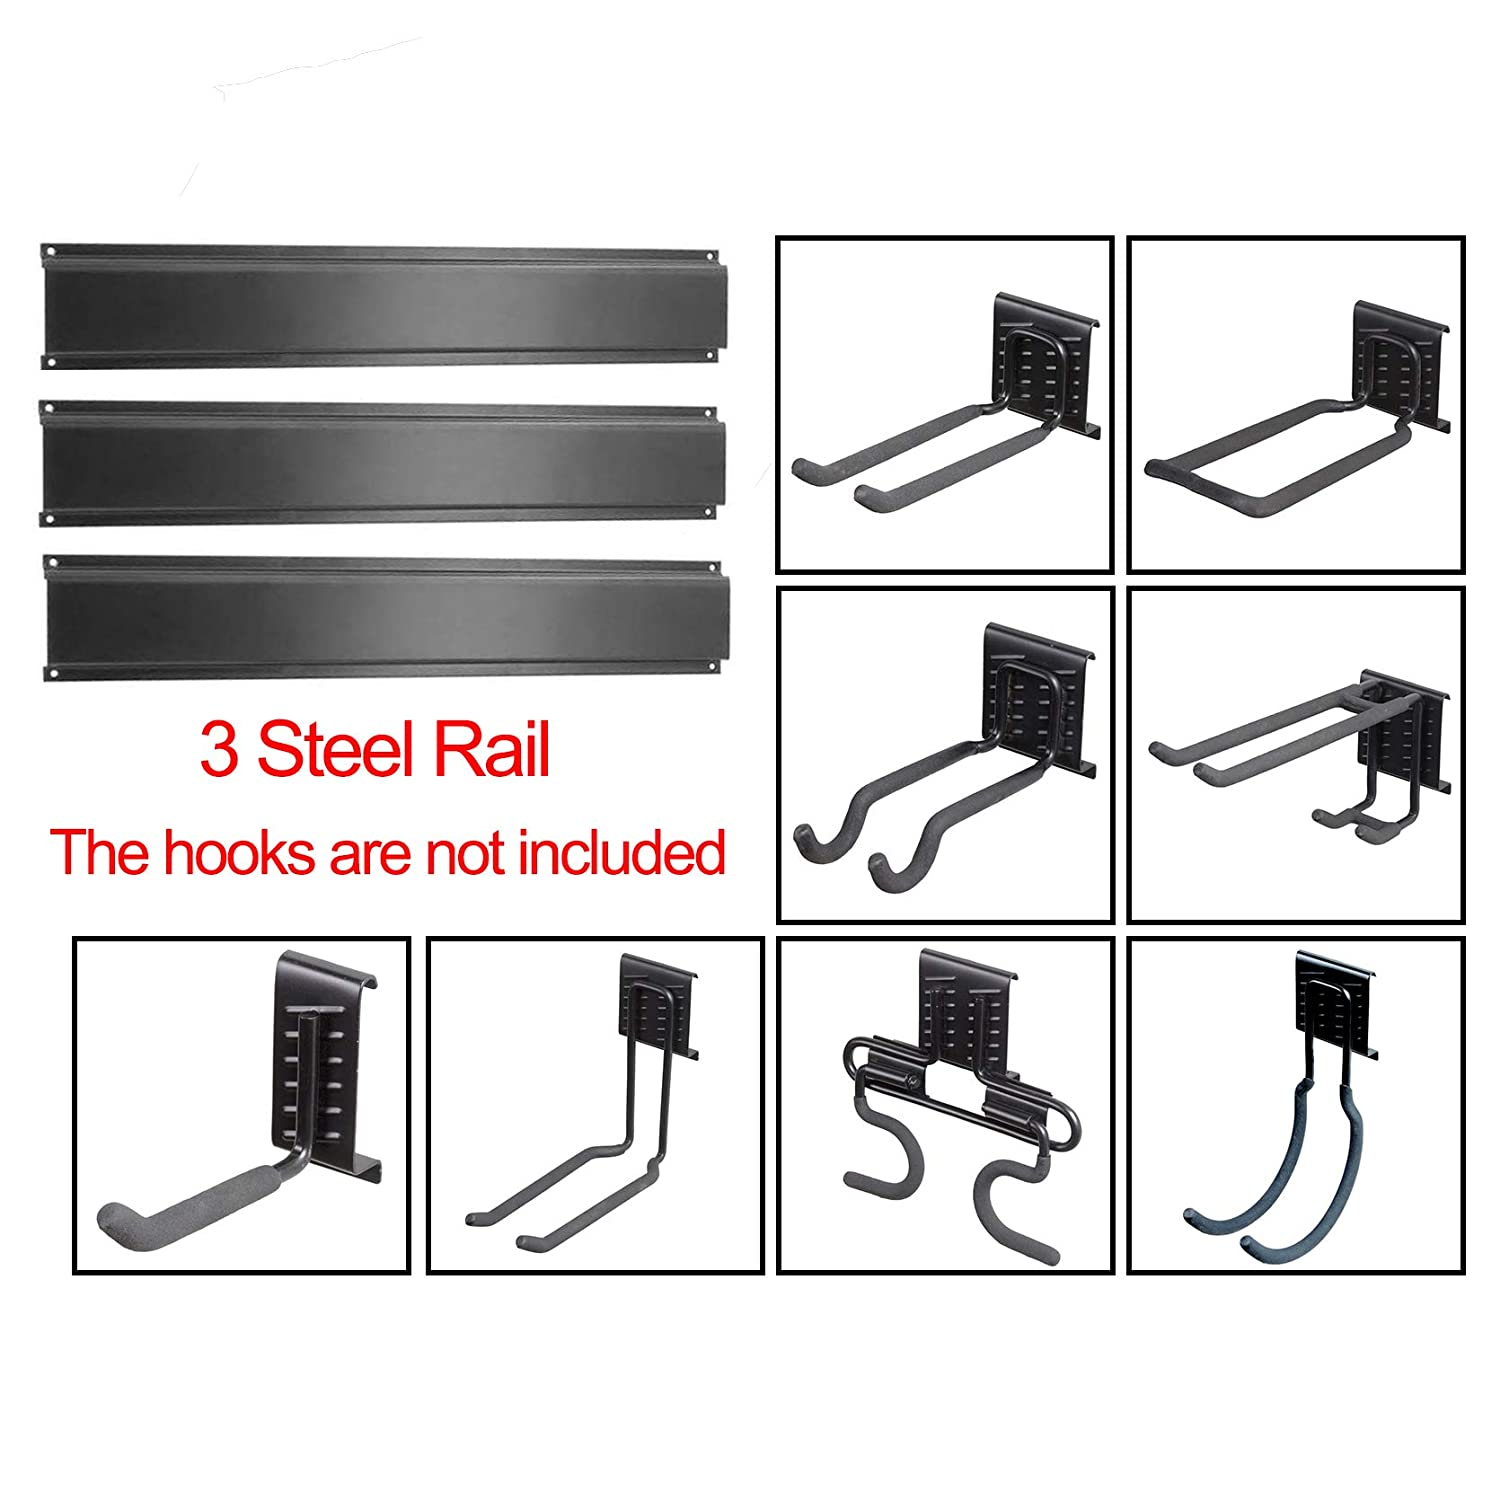 Ultrawall Garage Storage System, Steel Rail, Tool Organizer Track System for Utility Room, Basement, Shed and Garden Tool(3 Pack)